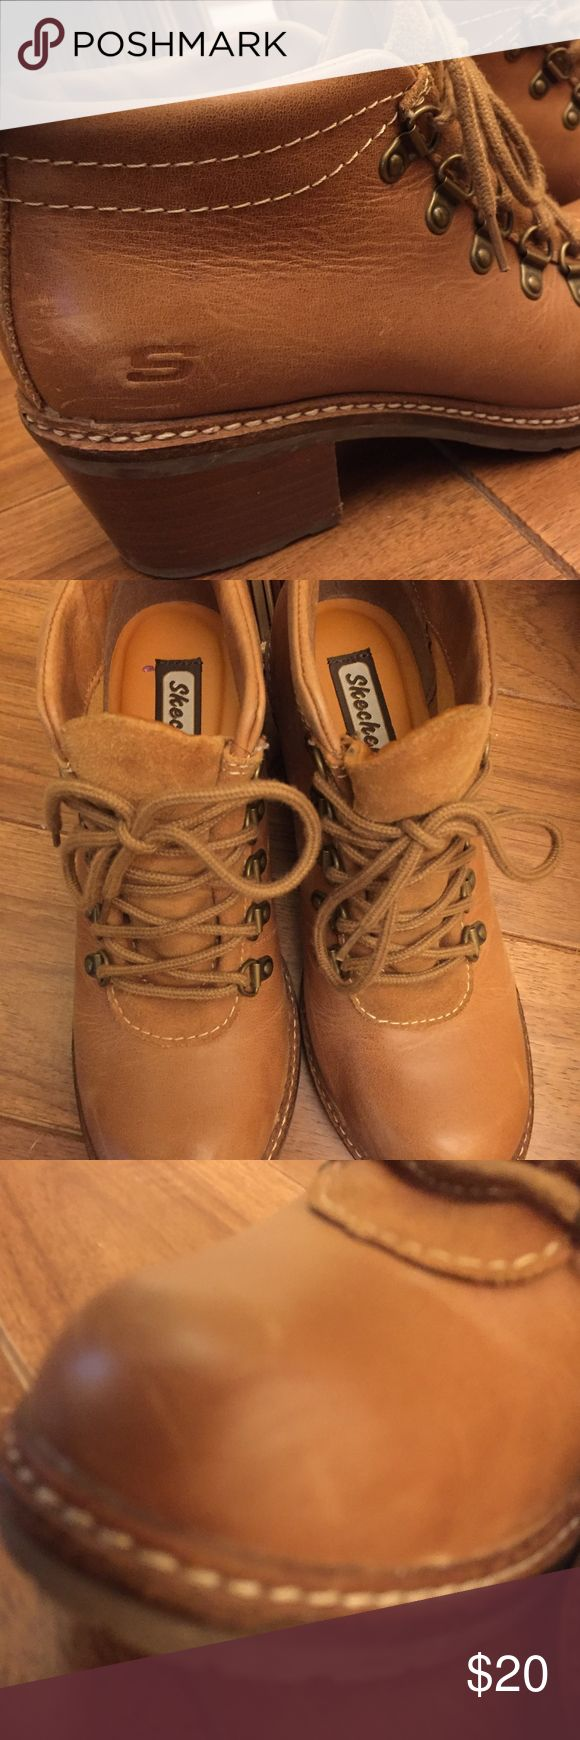 Sketchers Boots Sketchers tan eyelet boots with wooden heals. Skechers Shoes Ankle Boots & Booties